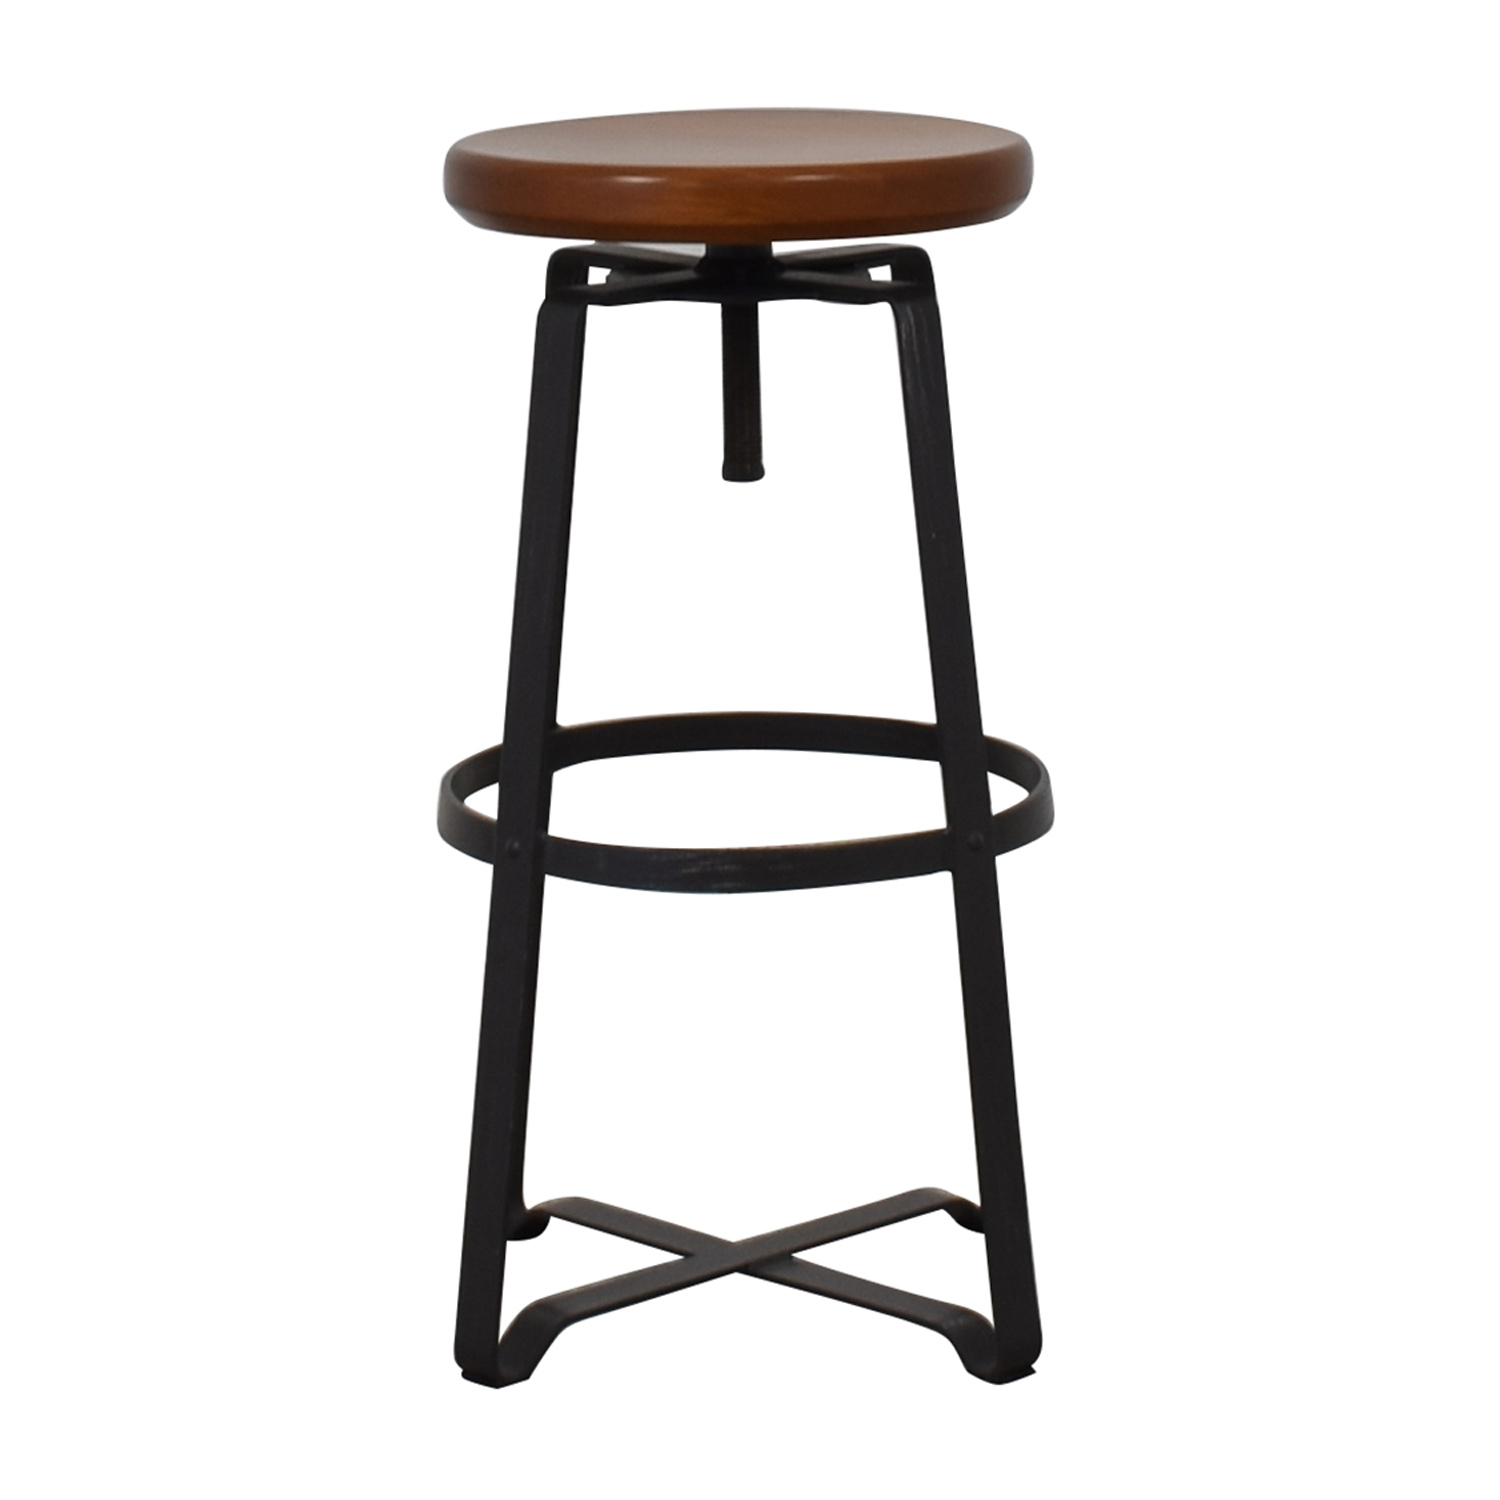 West Elm Adjustable Industrial Stool / Stools